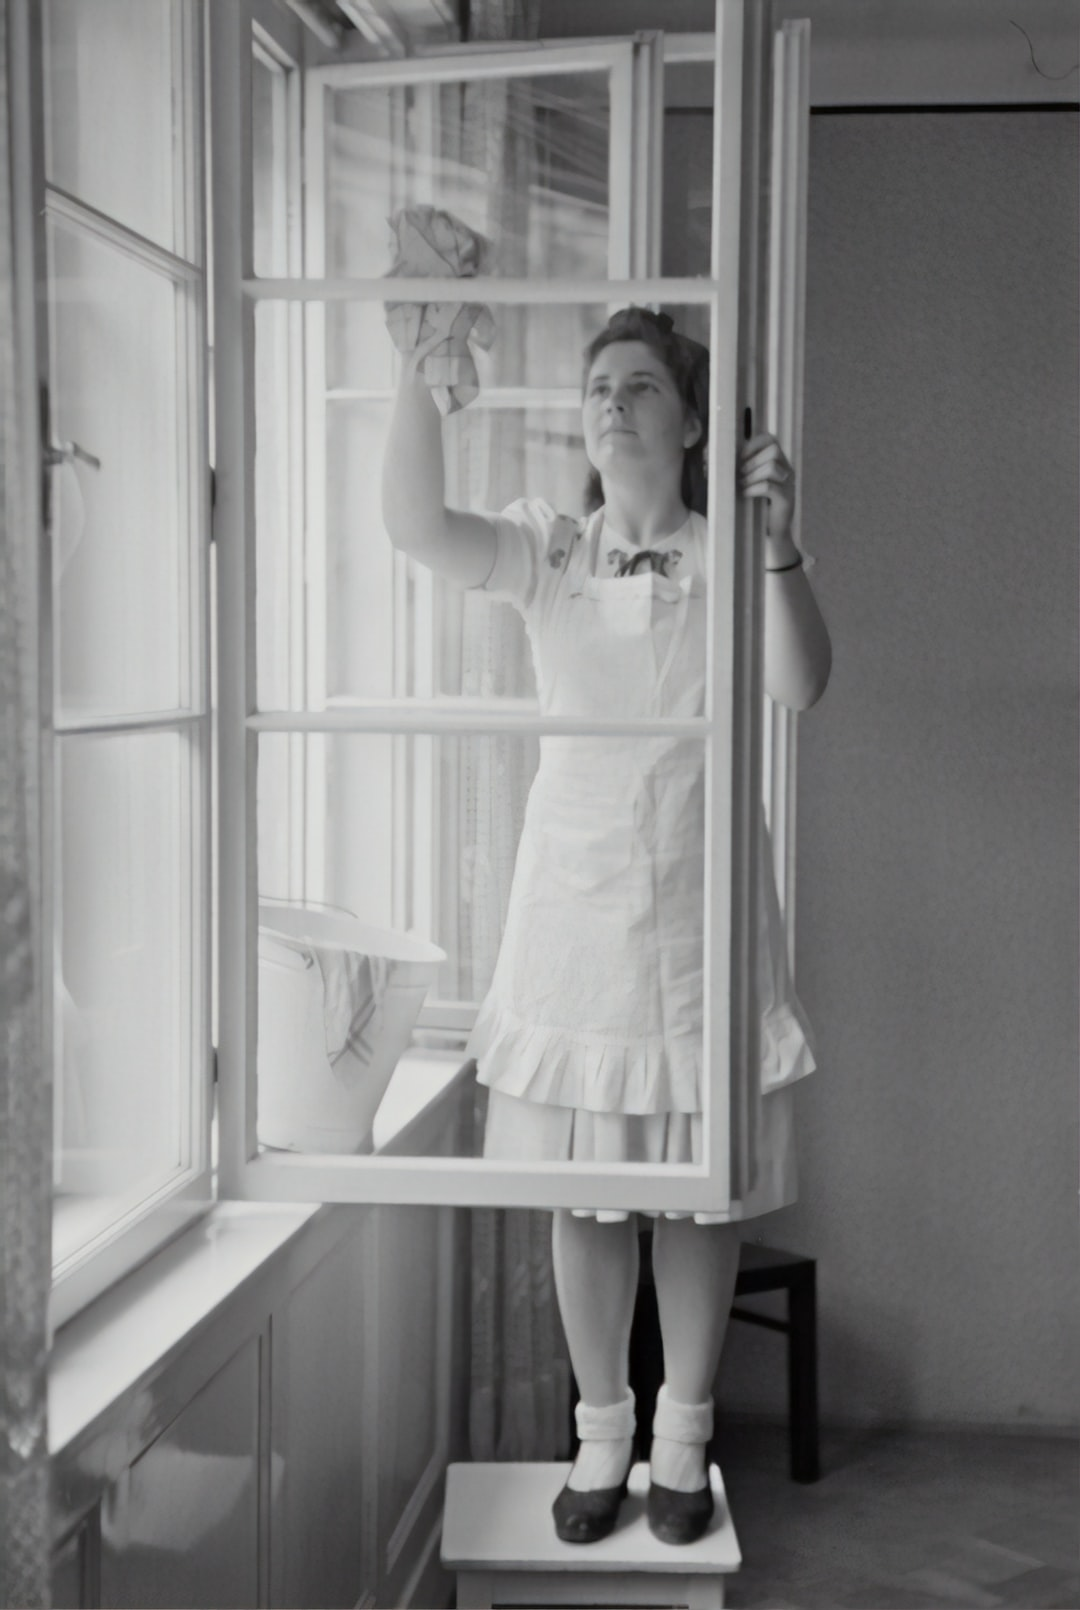 When cleaning windows, 1943